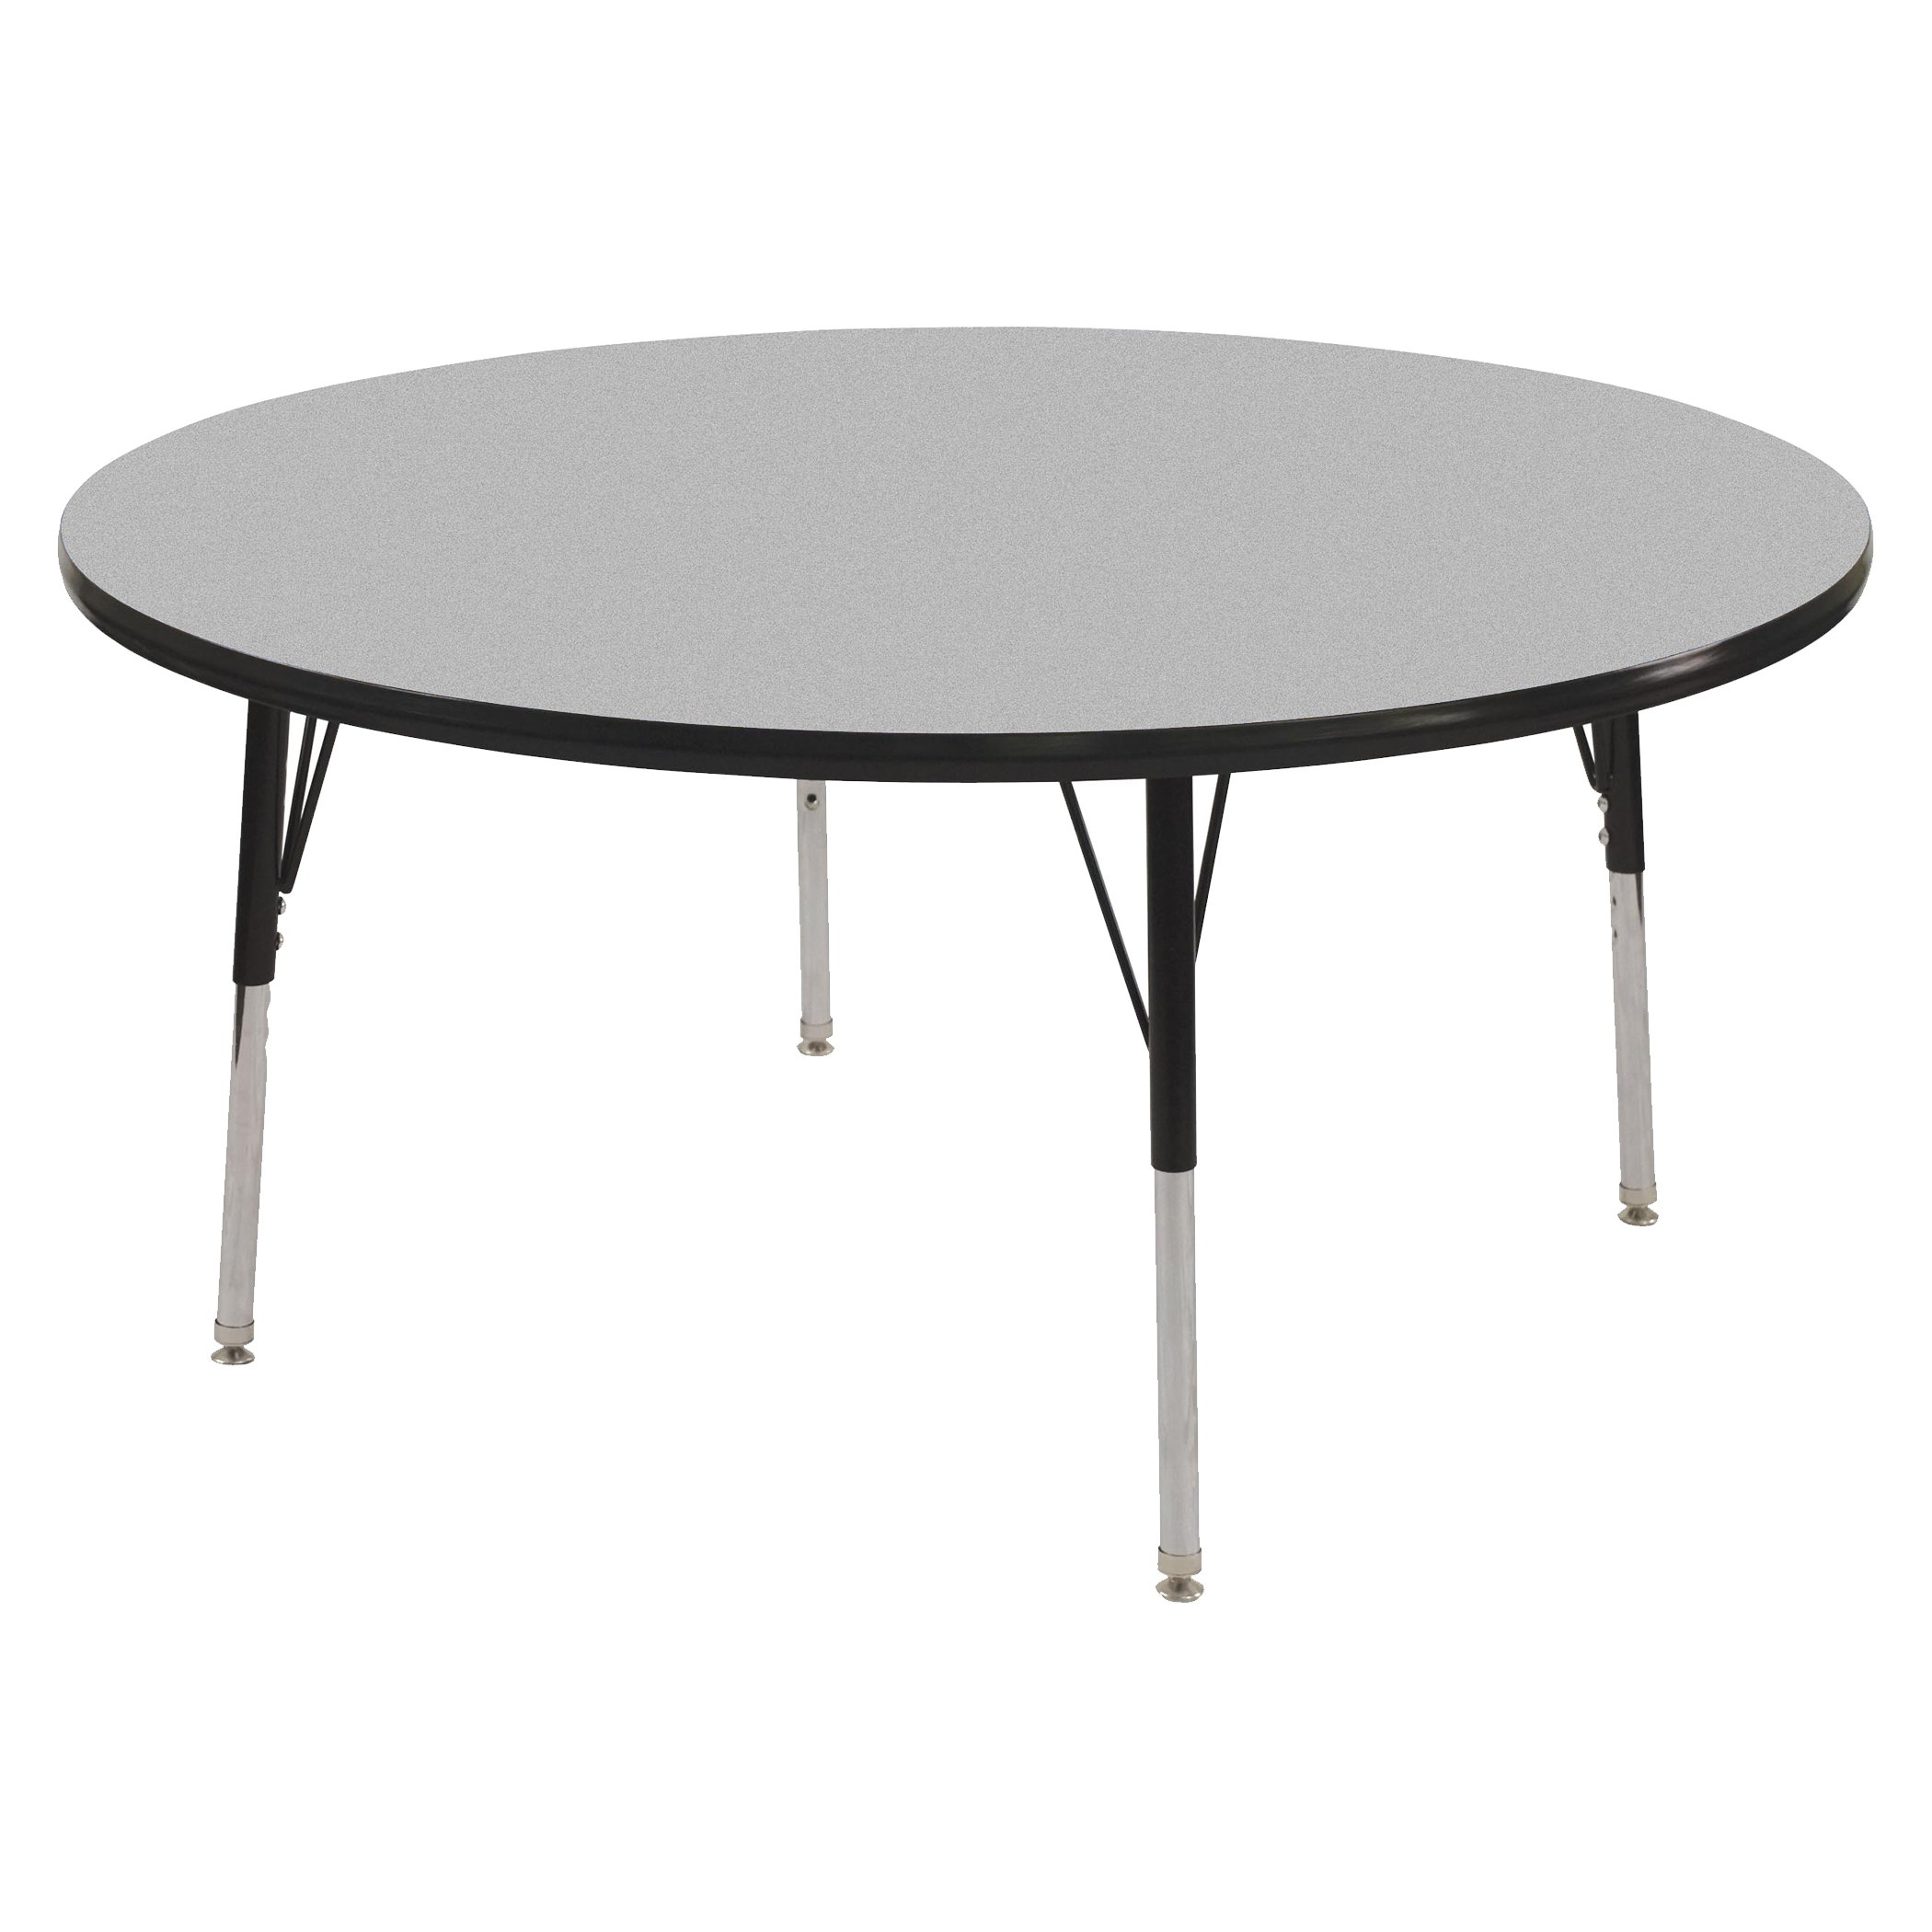 ECR4Kids T-Mold 48'' Round Activity School Table, Standard Legs w/ Swivel Glides, Adjustable Height 19-30 inch (Grey/Black)